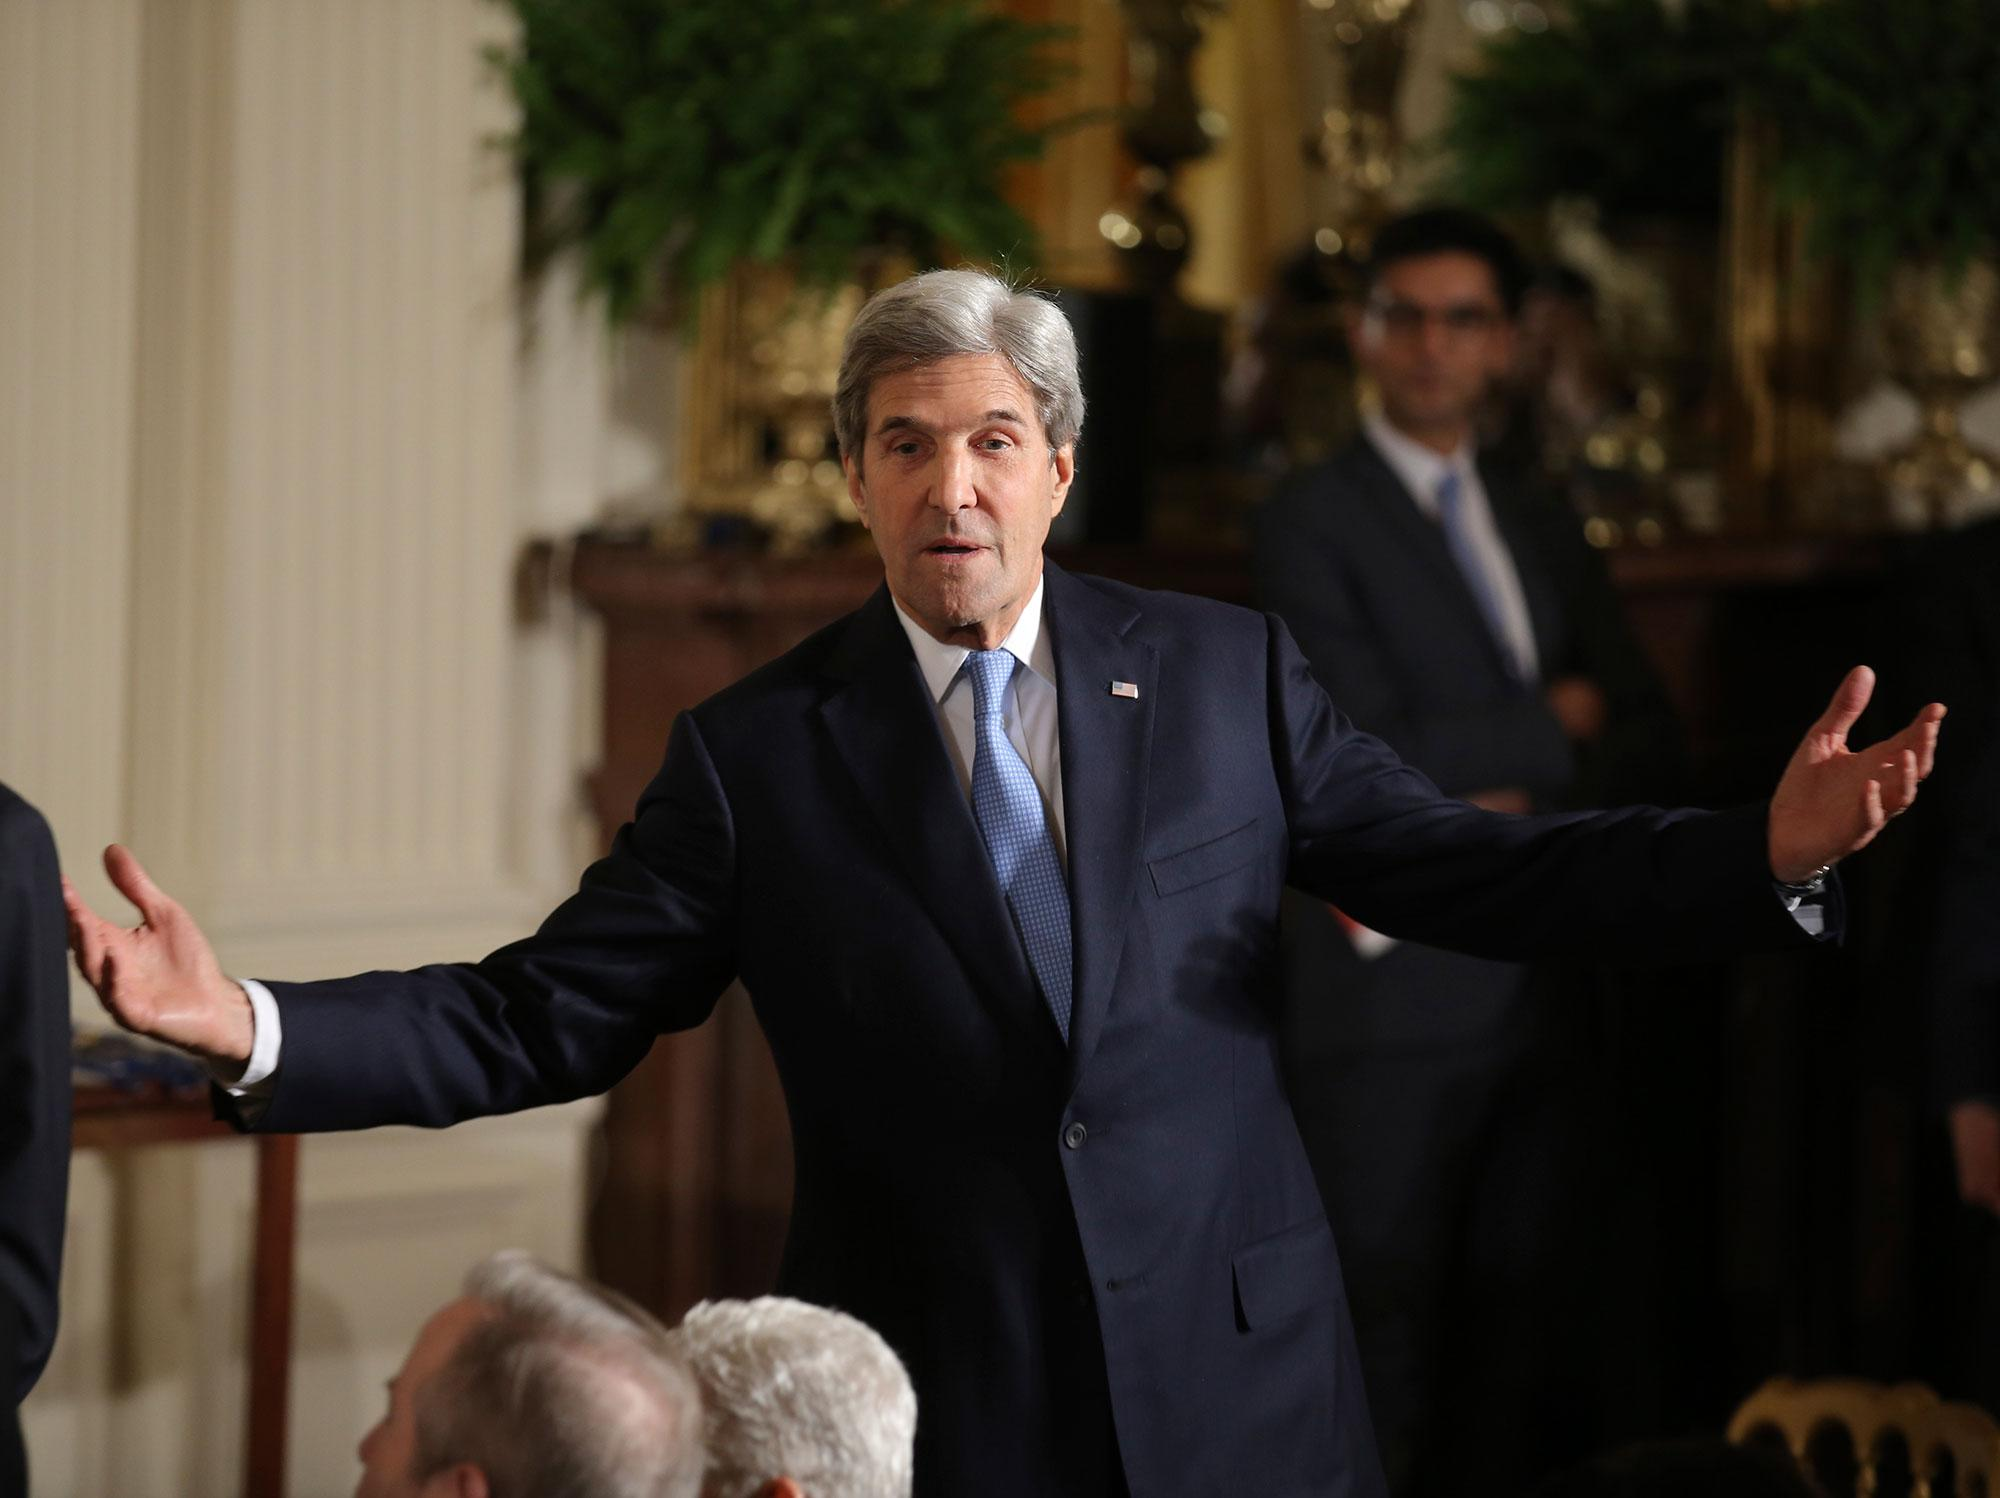 <p>U.S. Secretary of State John Kerry arrives prior to a Presidential Medal of Freedom ceremony in the White House East Room in Washington, U.S., Nov. 22, 2016. (Carlos Barria/Reuters) </p>